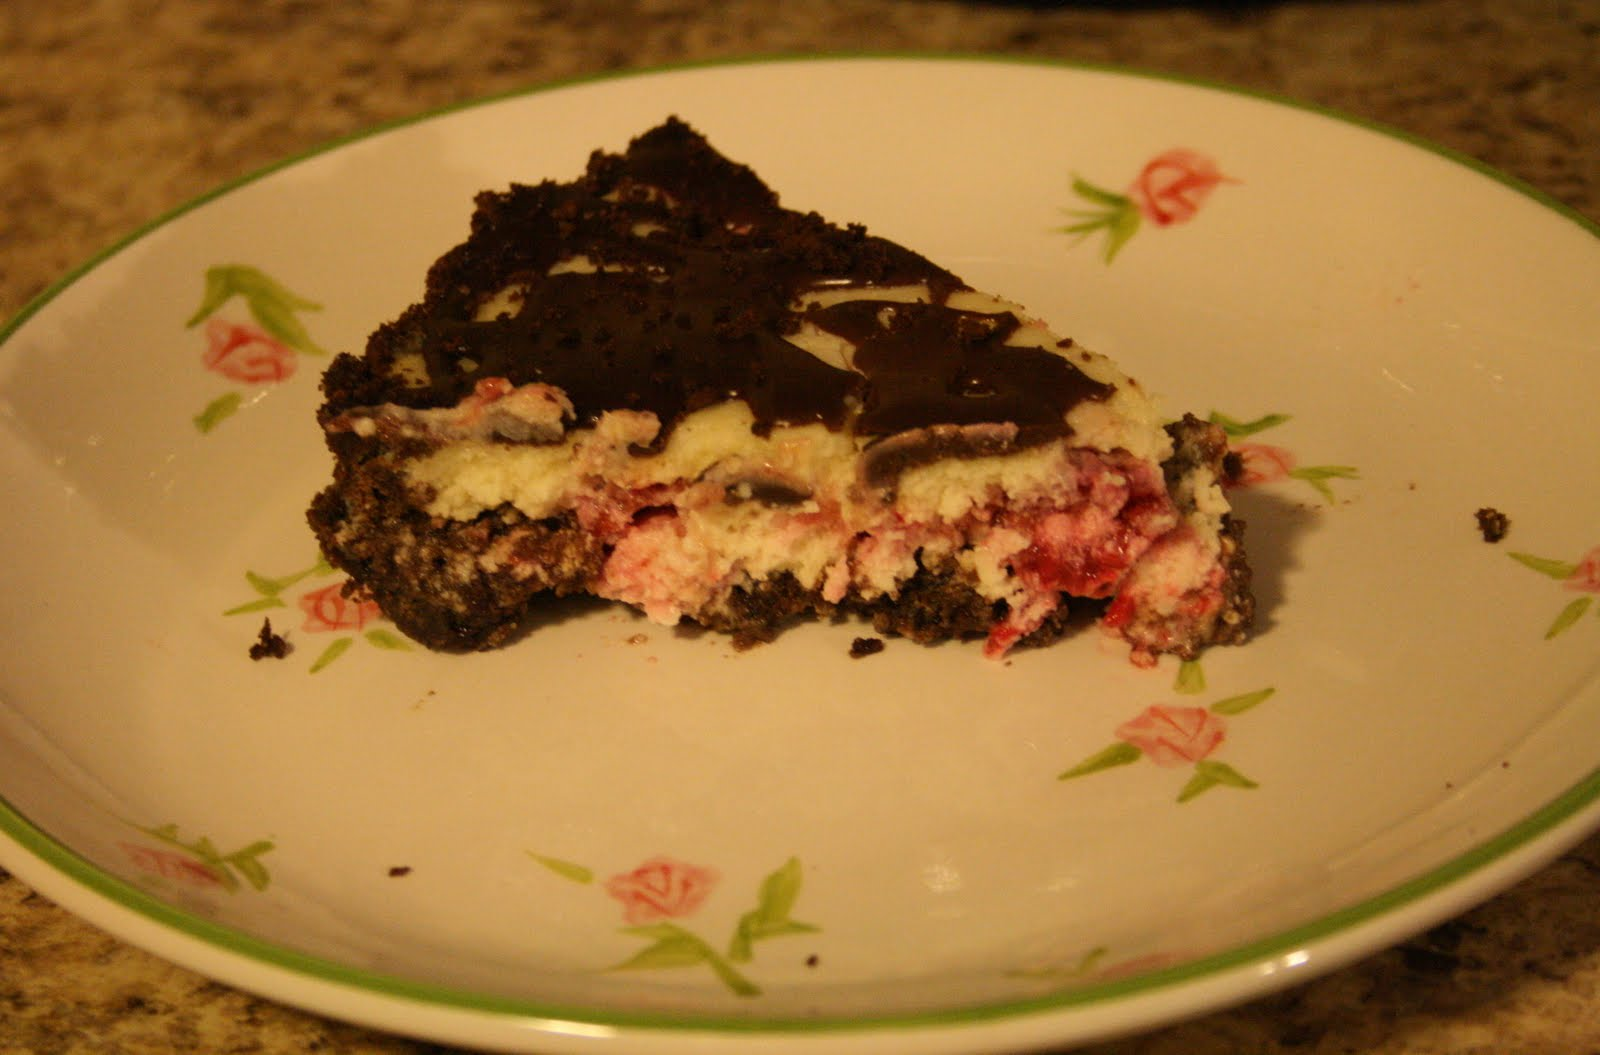 Raspberry Cream Cheese Pie was the winner. Chocolate graham cracker ...